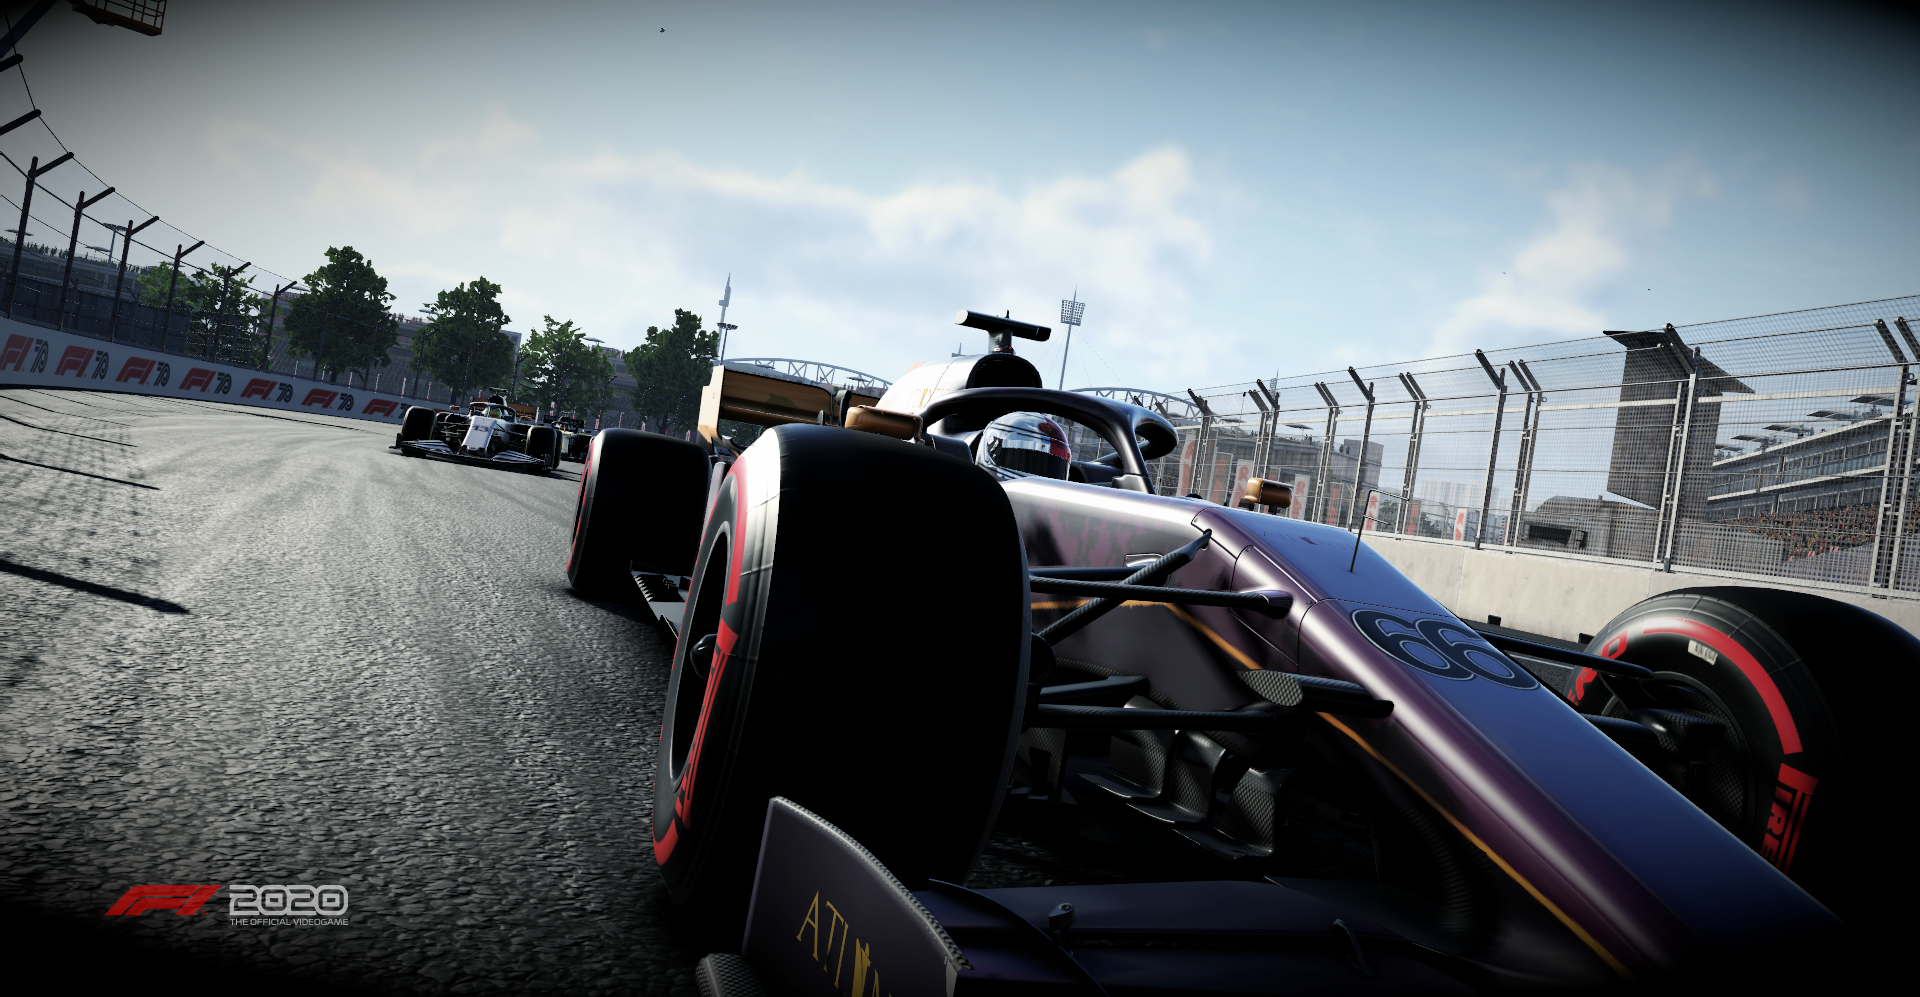 beauty shot of a Formula One car racing into the corner of the frame at an angle in F1 2020